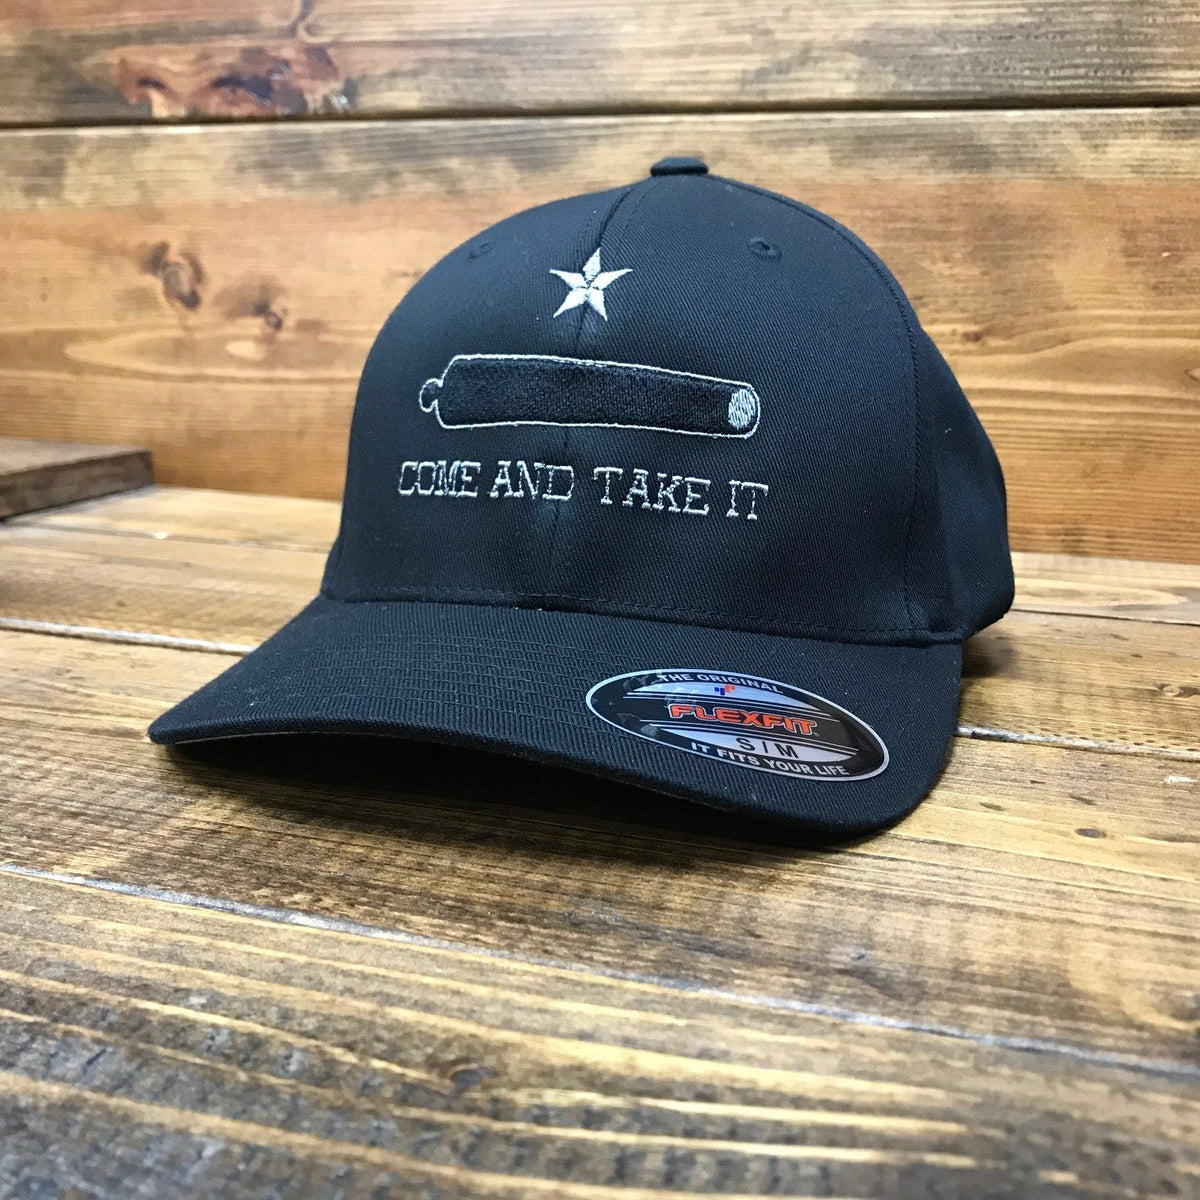 6fb2bb1aadae6 Come And Take It Flexfit Hat - Discontinued - Eagle Six Gear